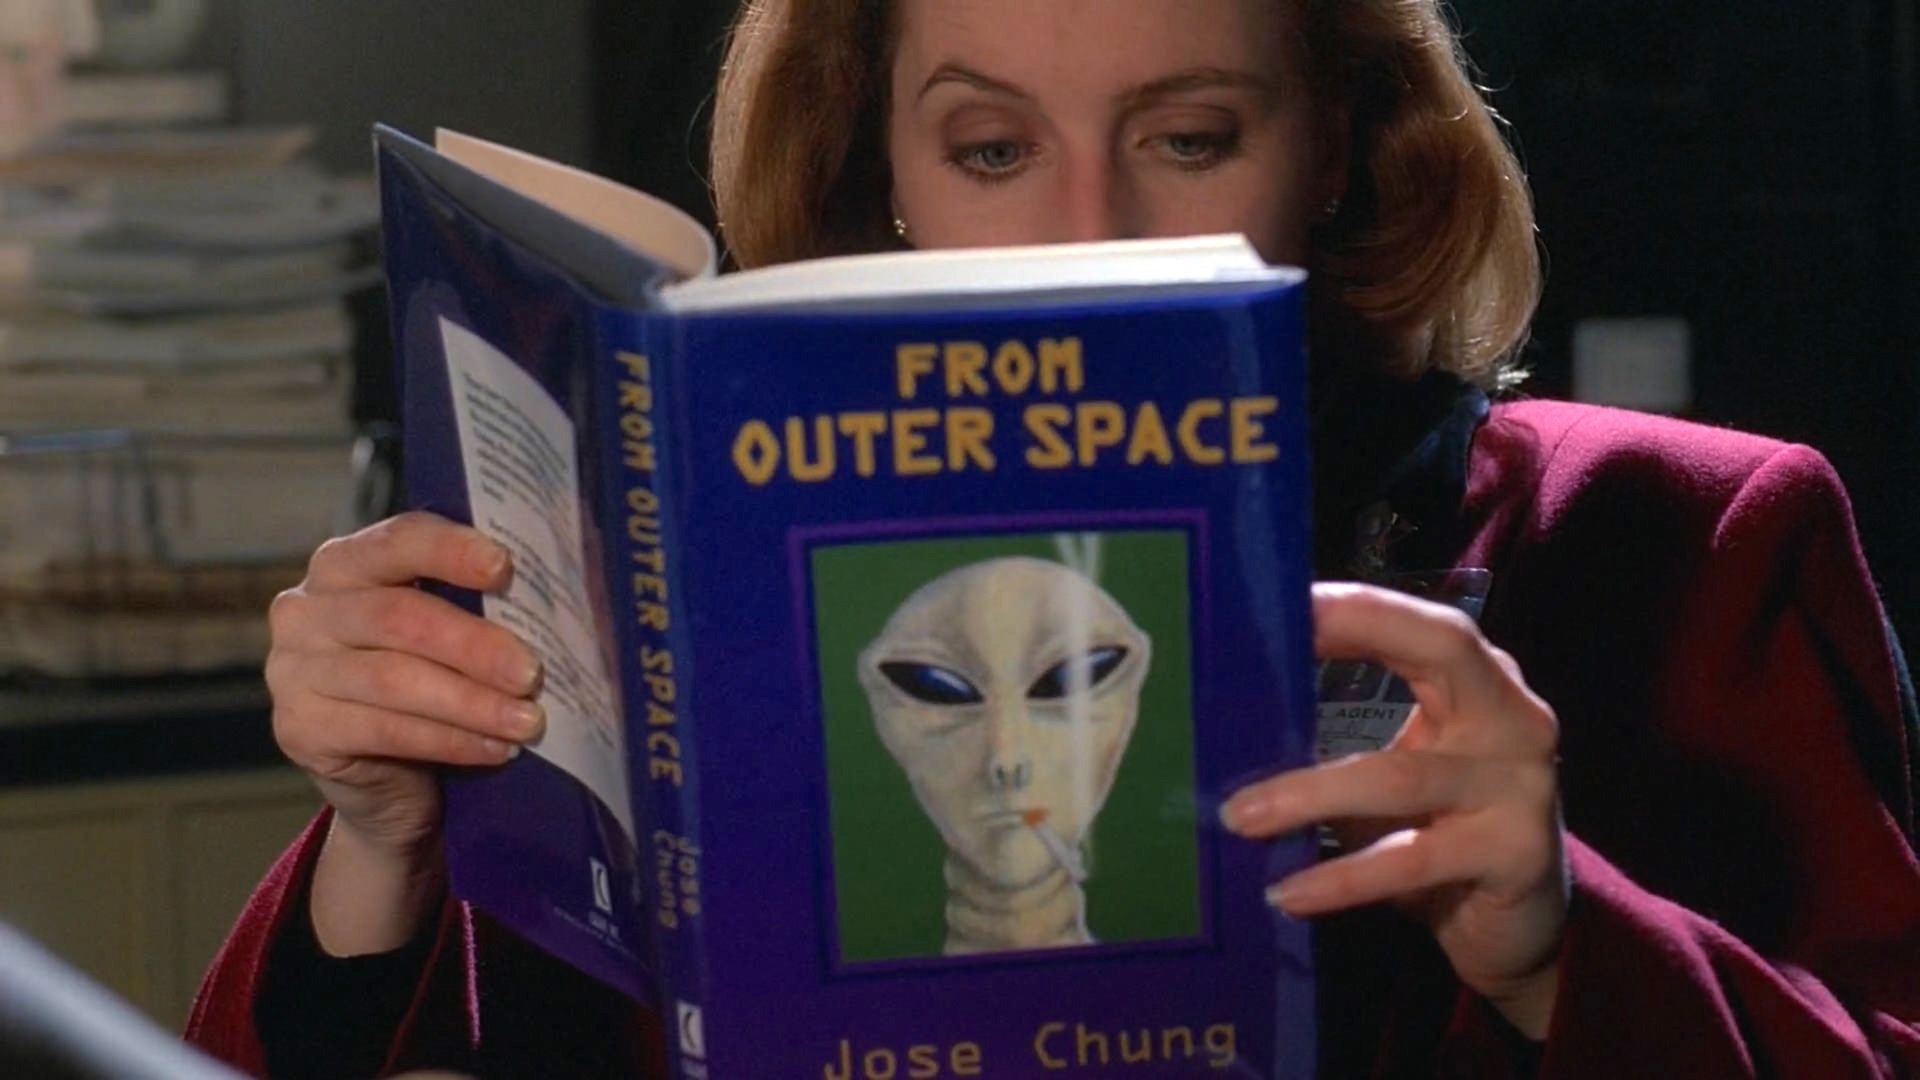 """The X-Files"" Jose Chung's 'From Outer Space'"